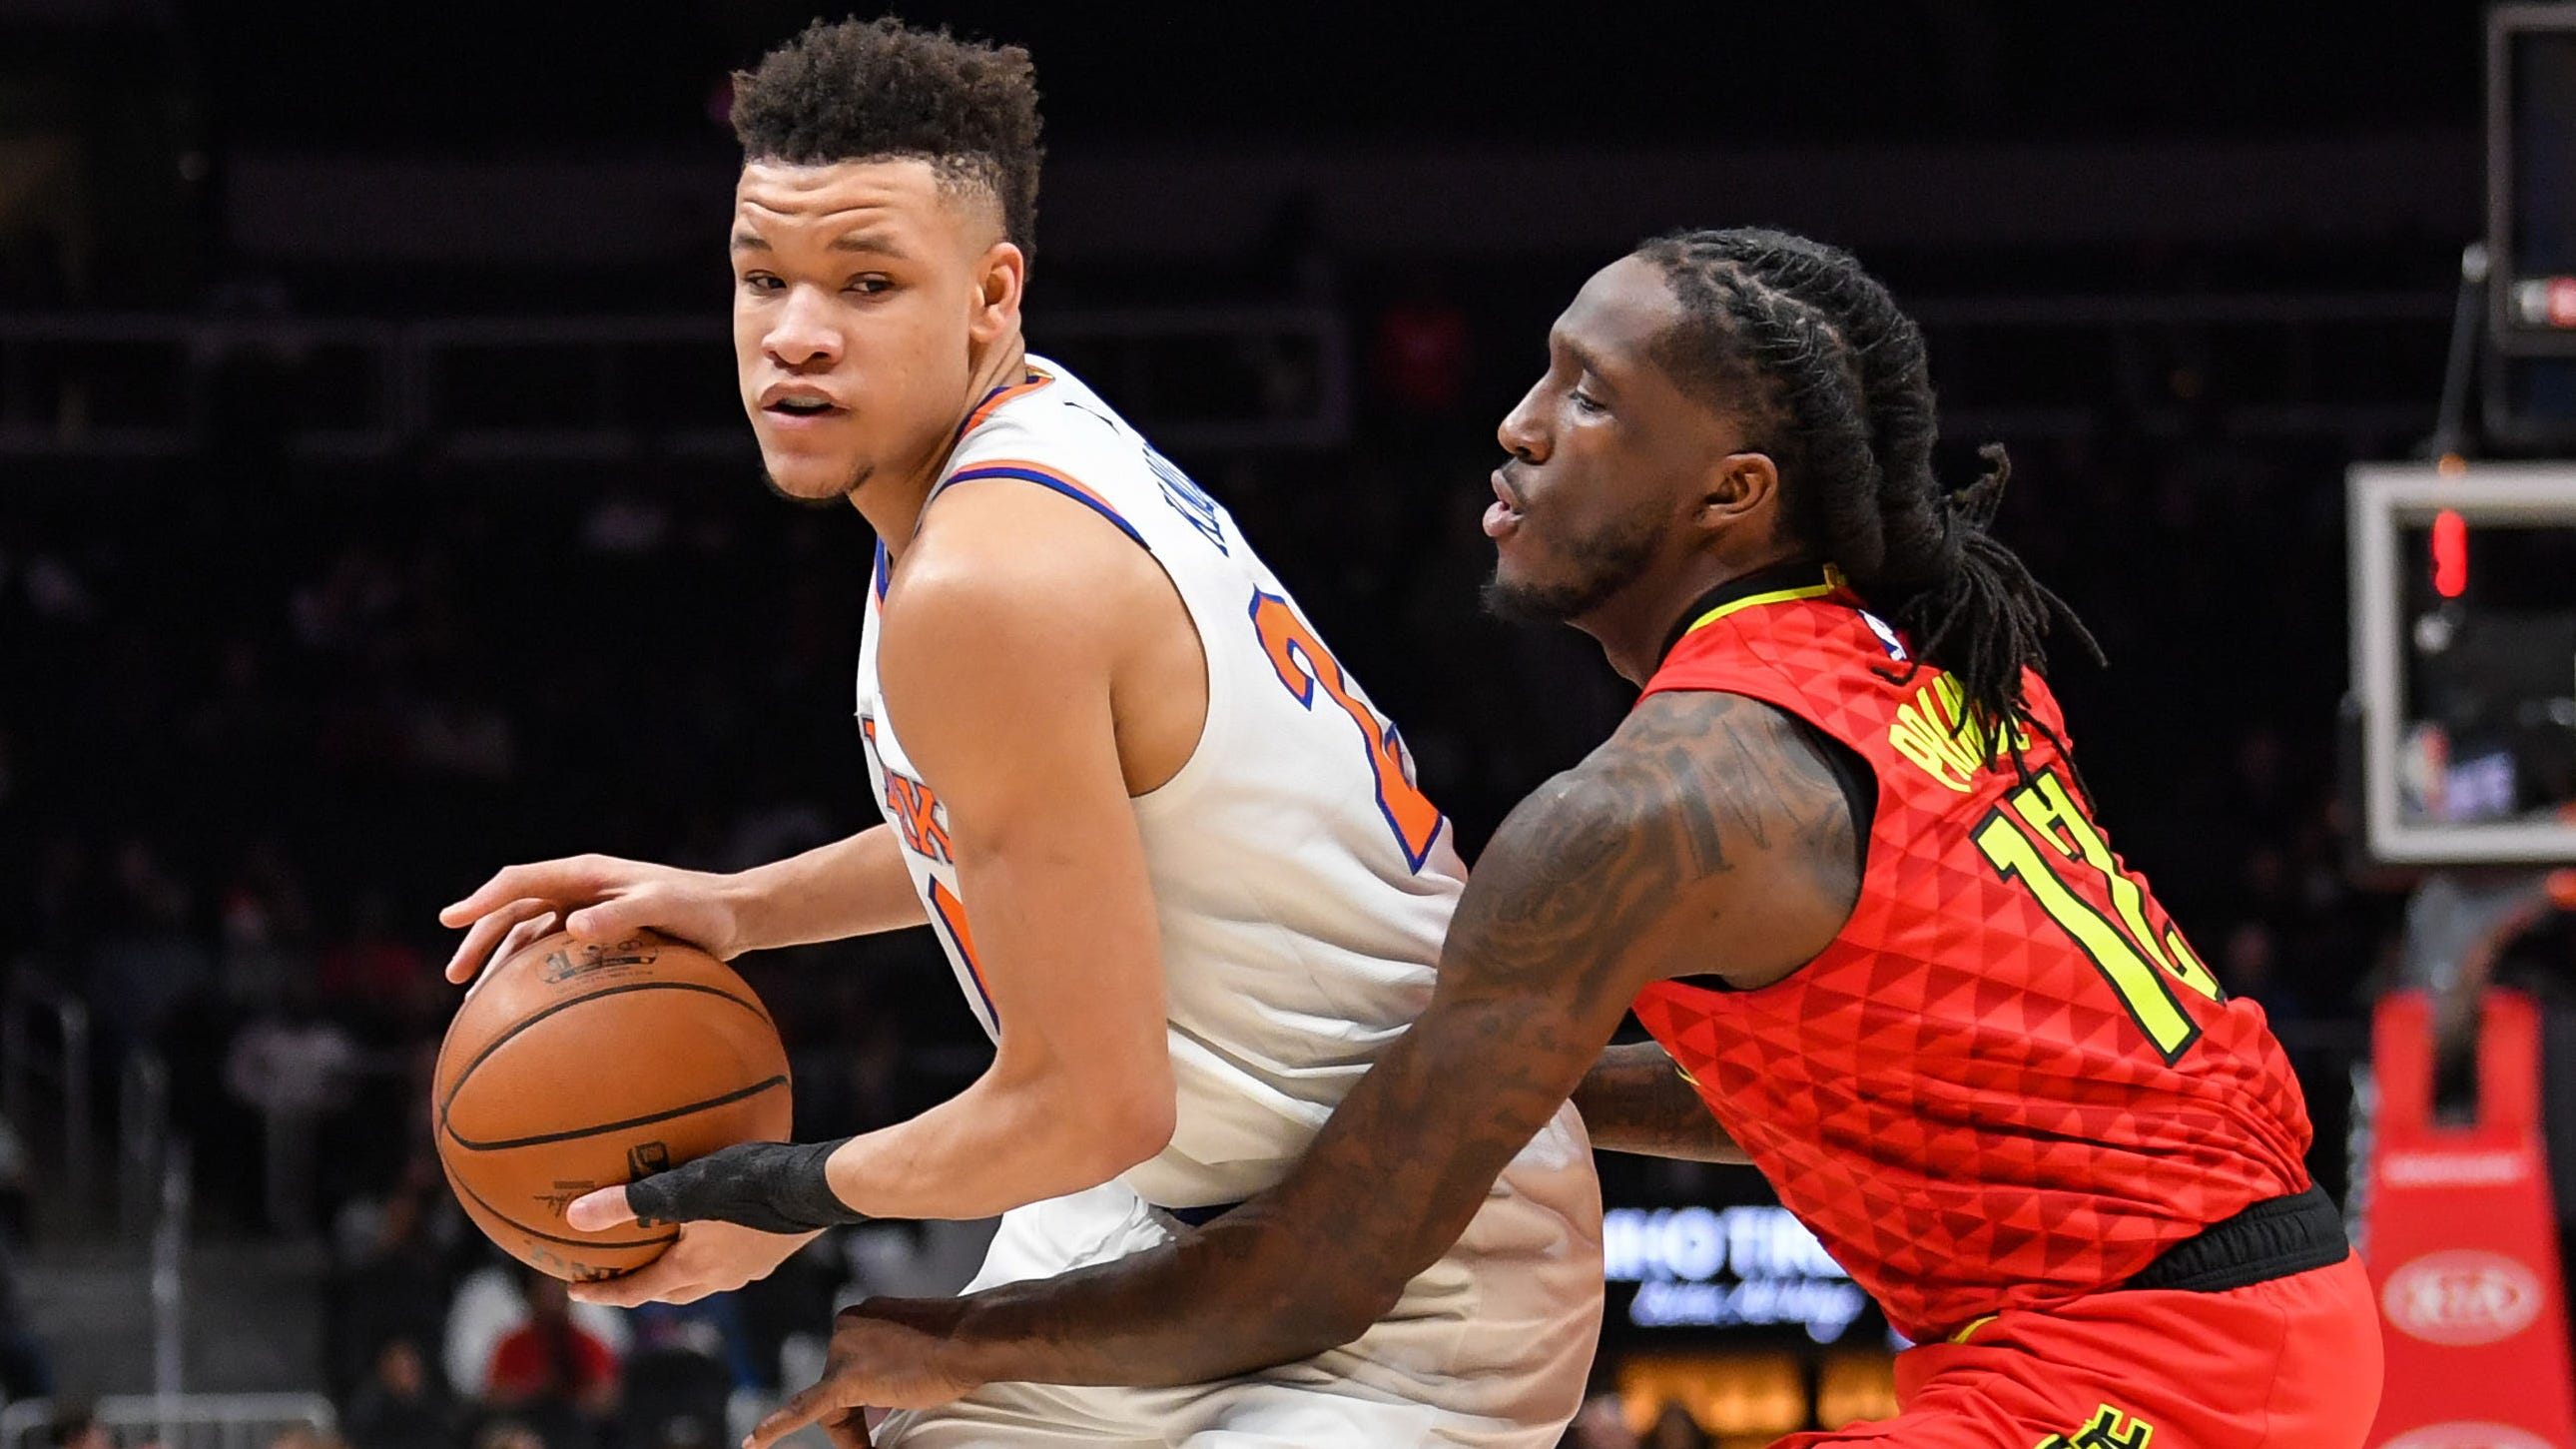 New York Knicks finally win a game, down the Atlanta Hawks to snap 18-game skid